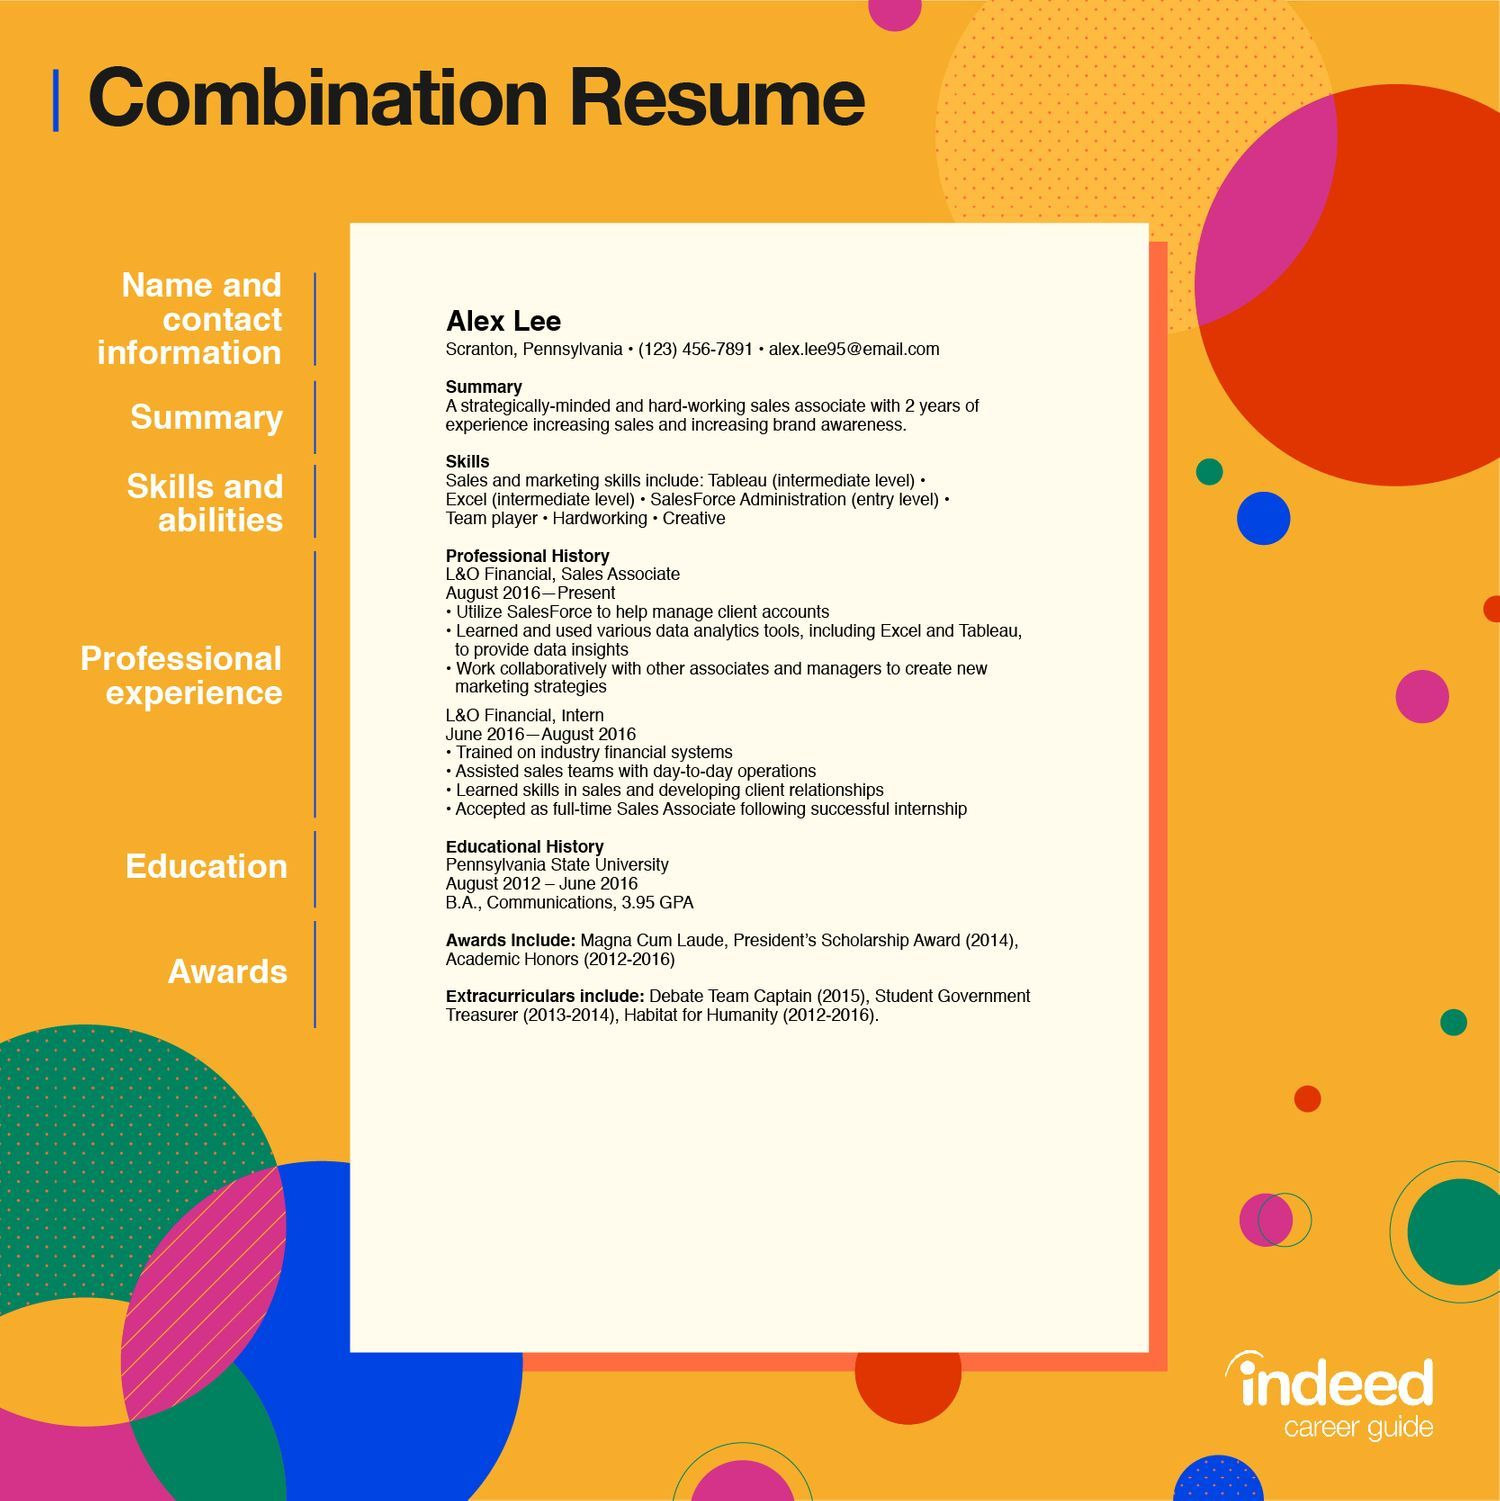 Resume Format Guide With Tips And Examples Indeed Com Resume Format Resume Resume Tips